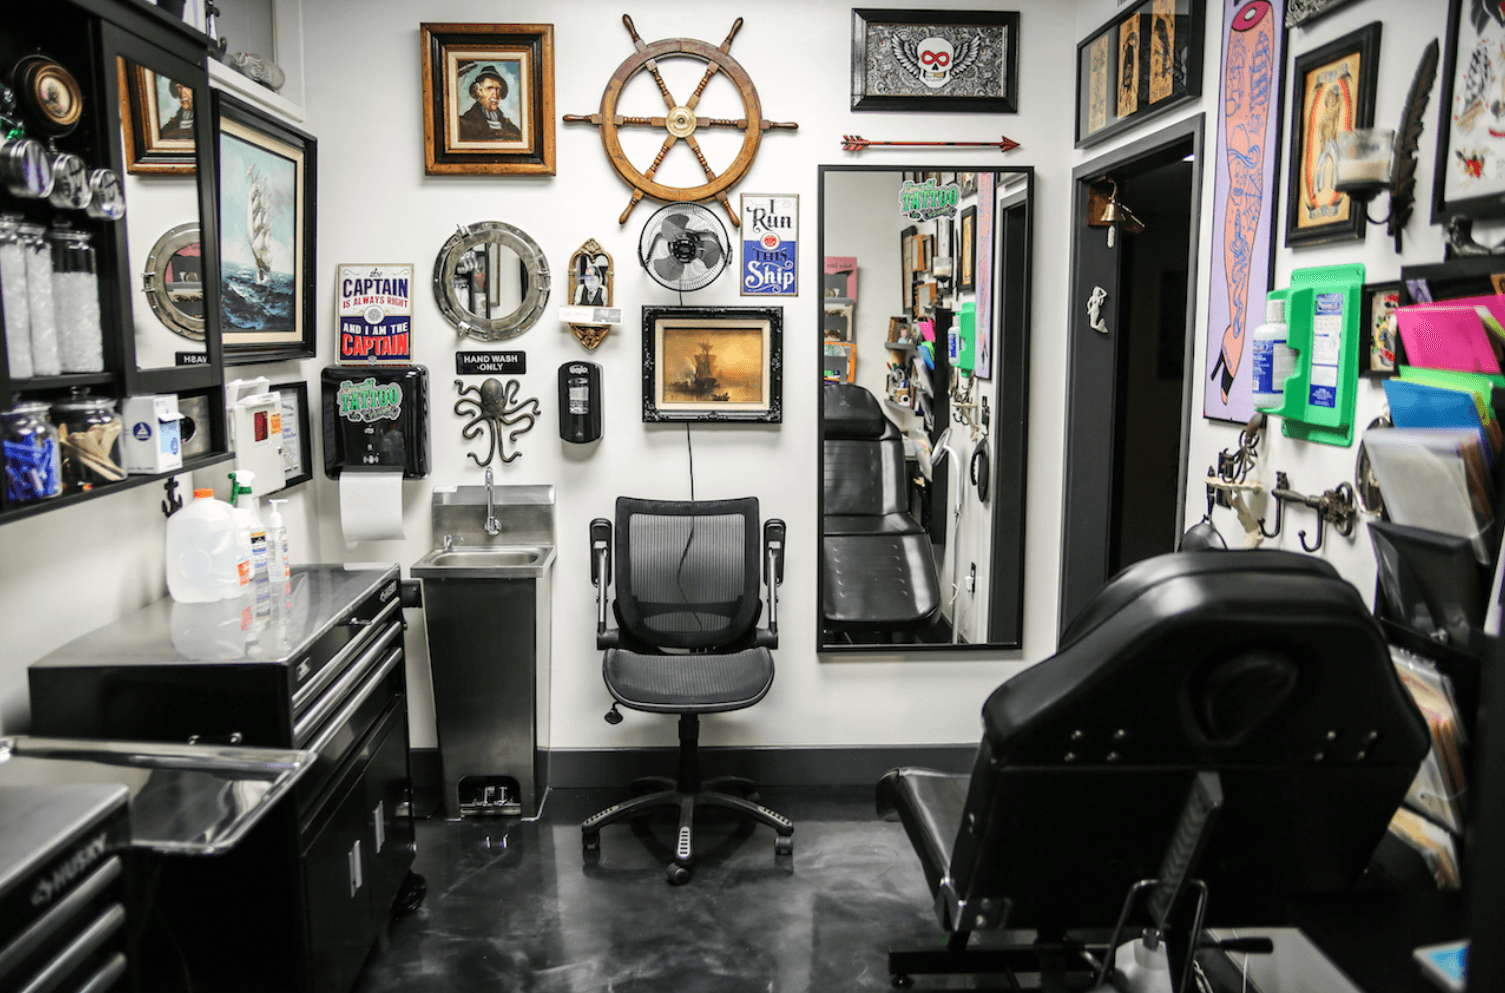 Tattoo parlor green-lighted for Old Town